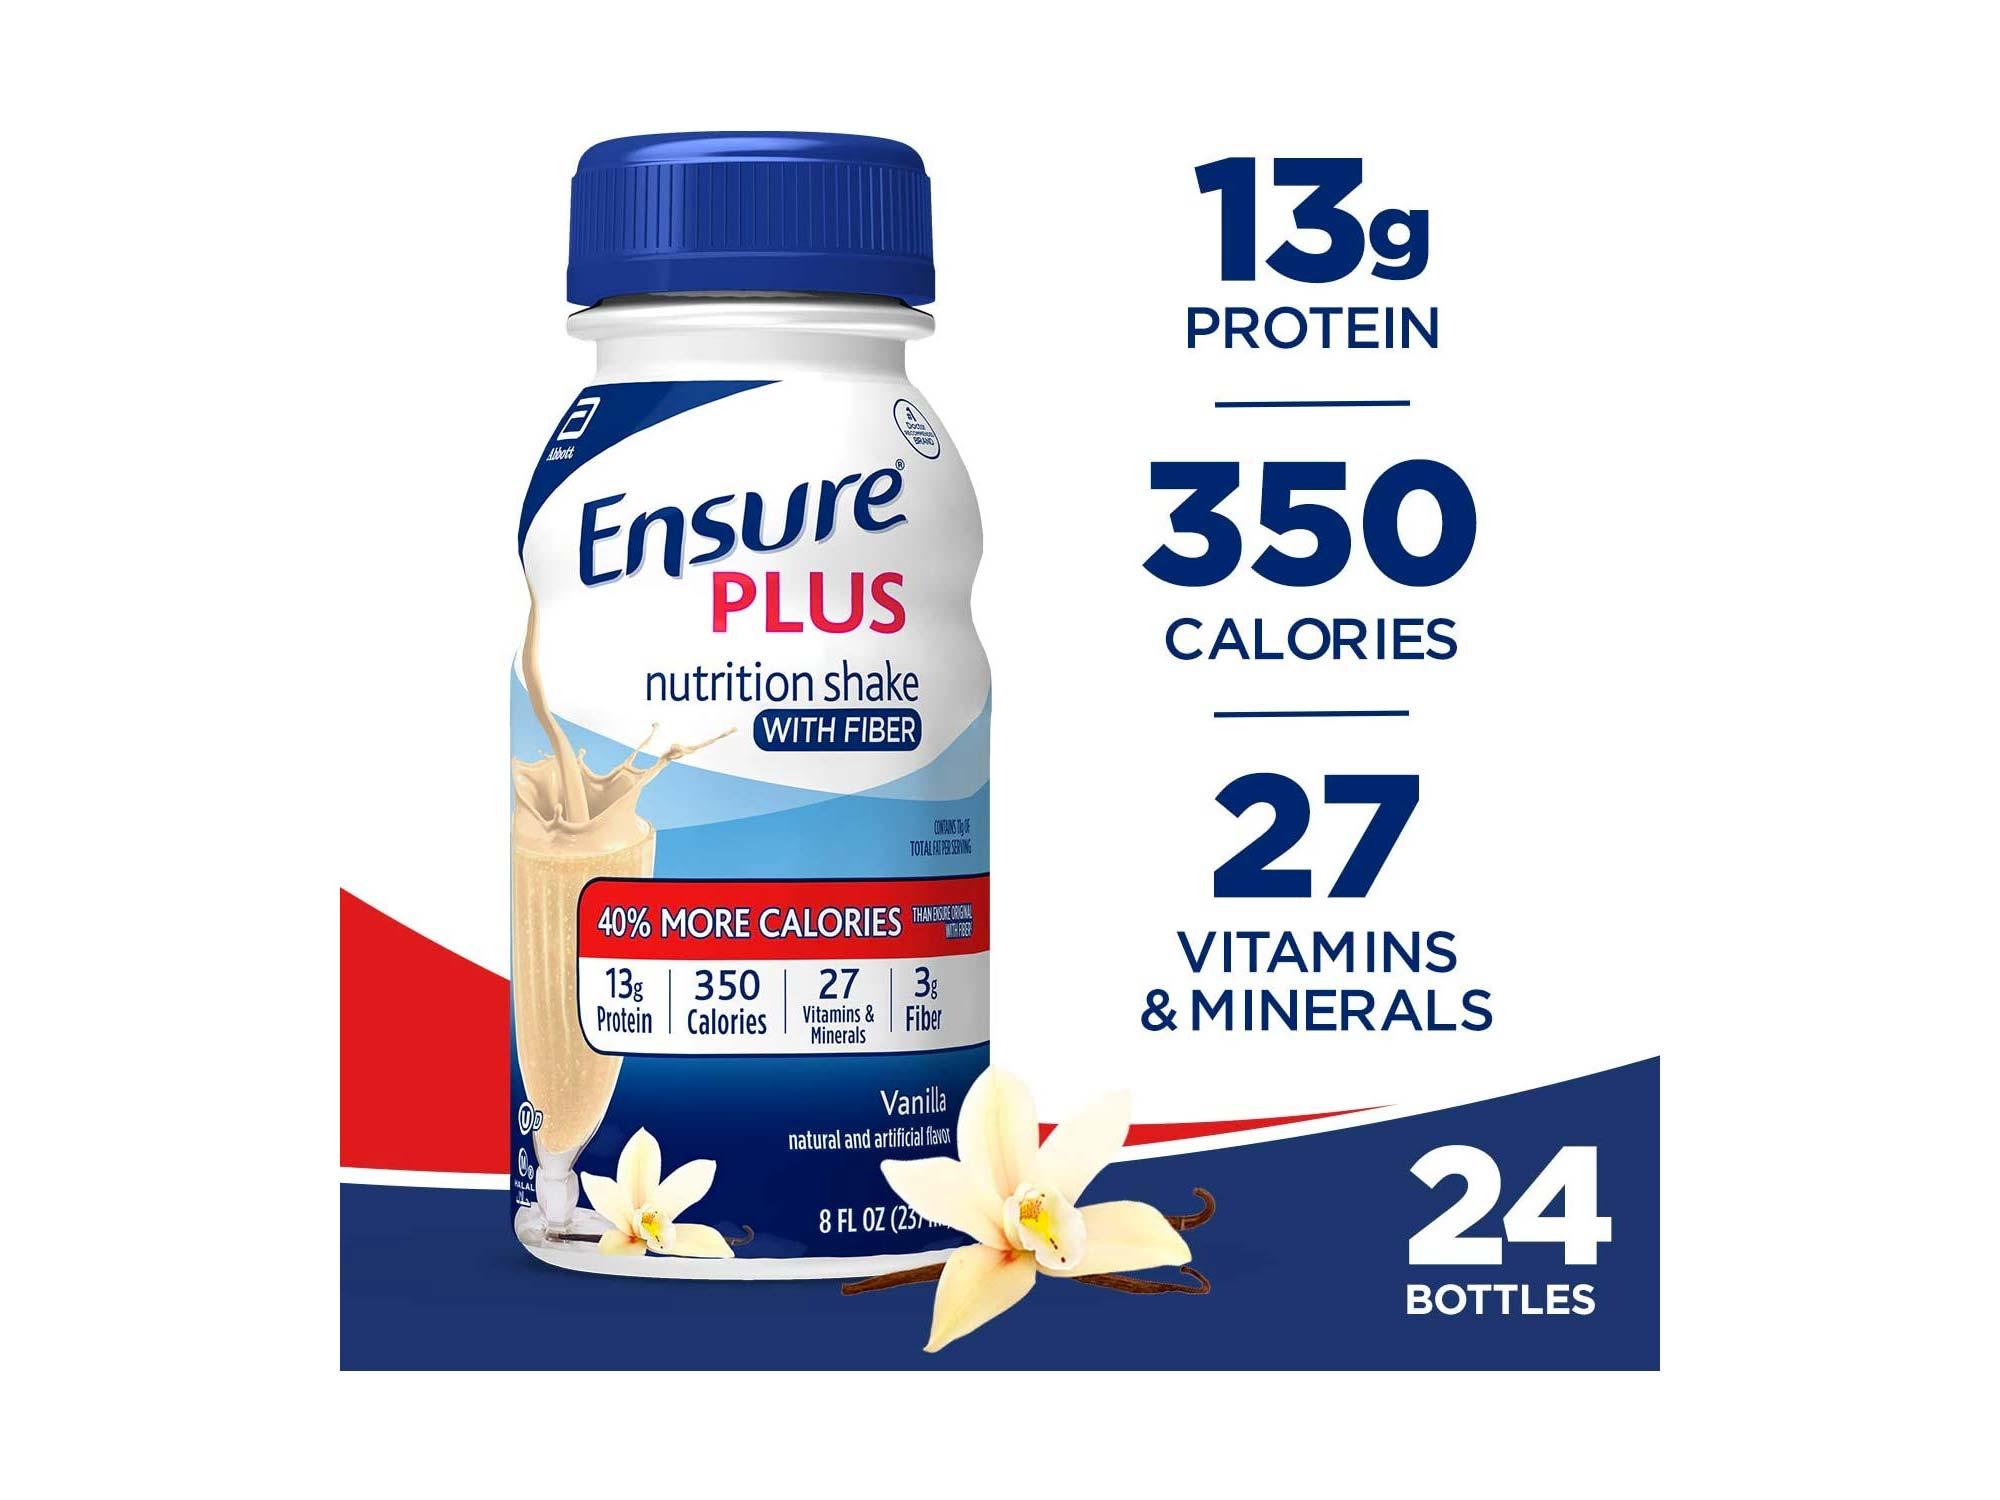 Ensure Plus Nutrition Shake with Fiber, 13g High-Quality Protein